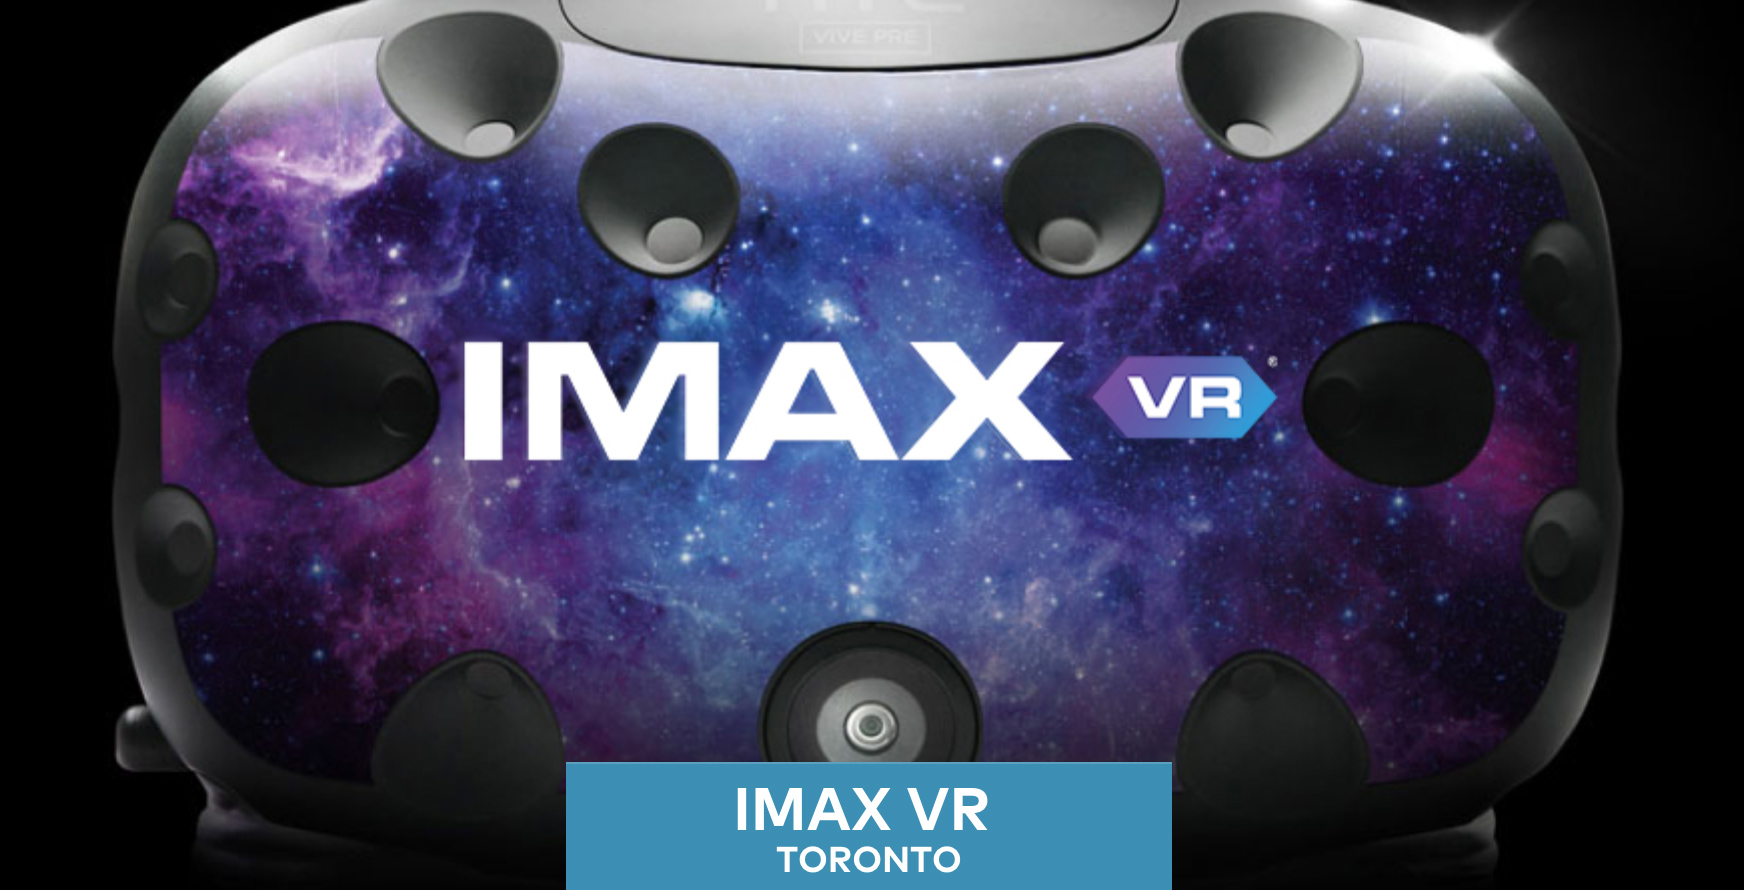 IMAX VR experience Toronto